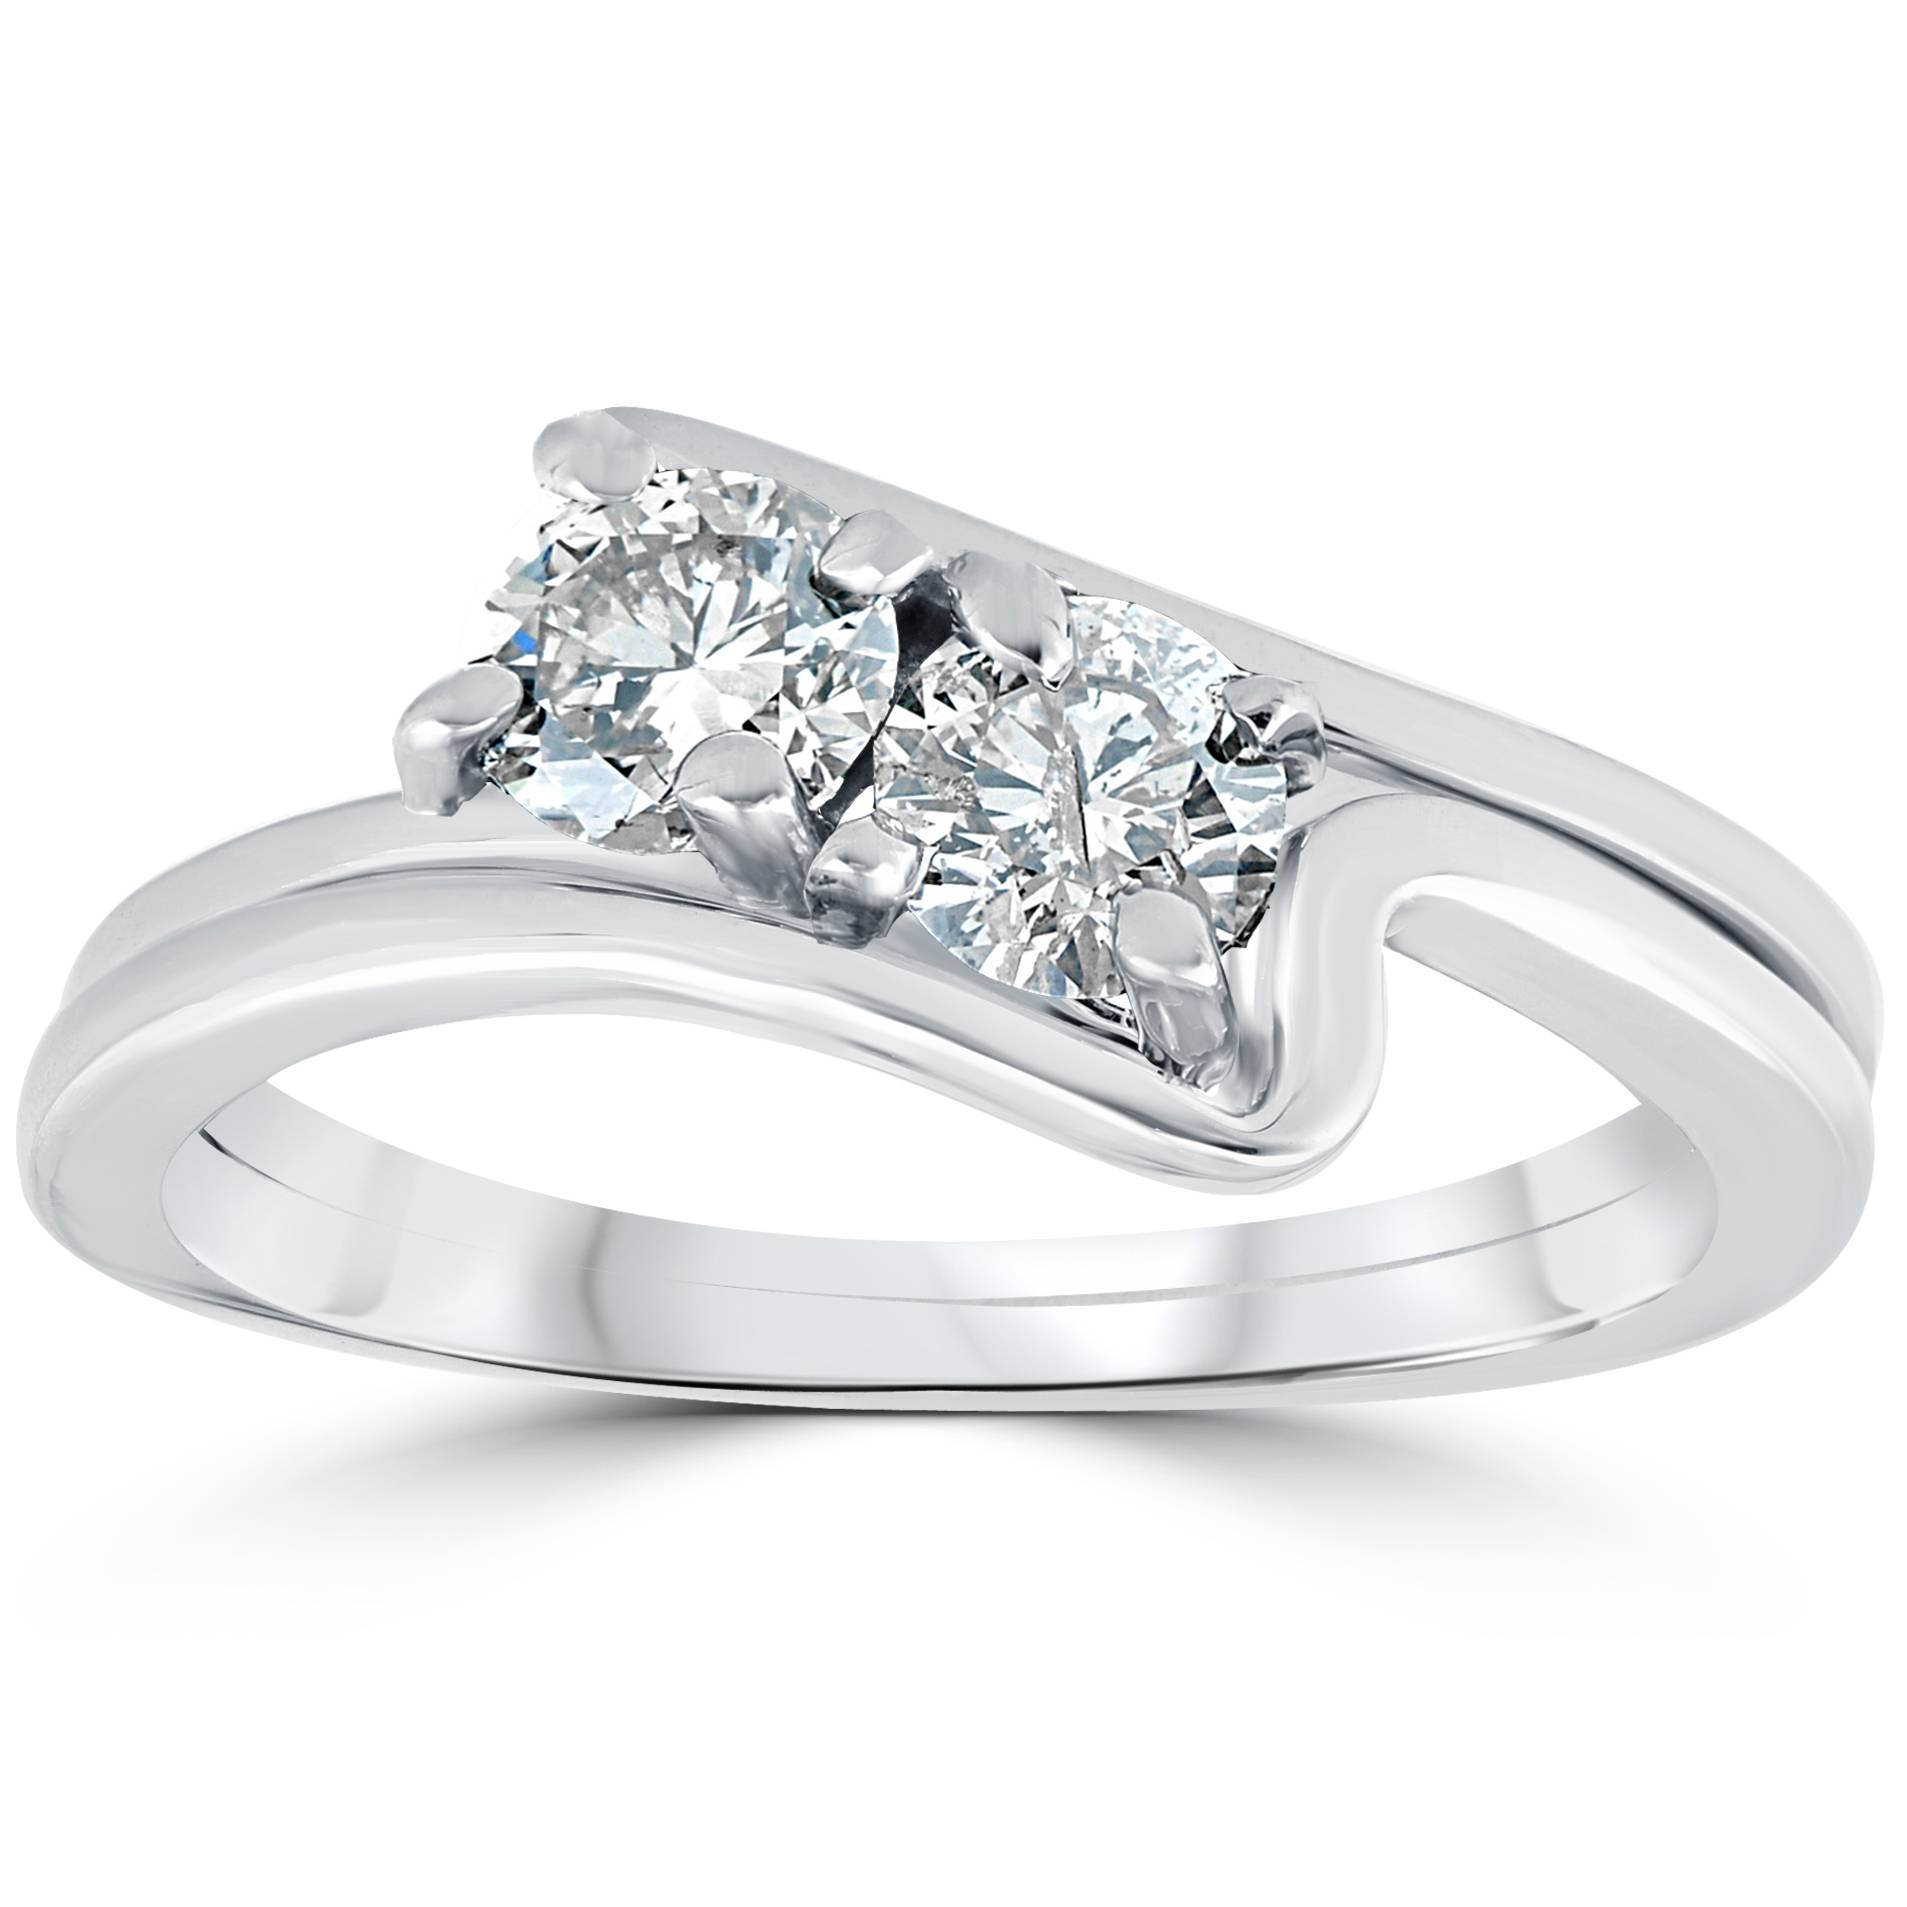 forever diamond Forever diamonds isn't just a premium jewelry store, we also offer jewelry repair, custom jewelry design, sizing services, jewelry cleaning, watch repair and so much more throughout the gilbert, arizona, area.